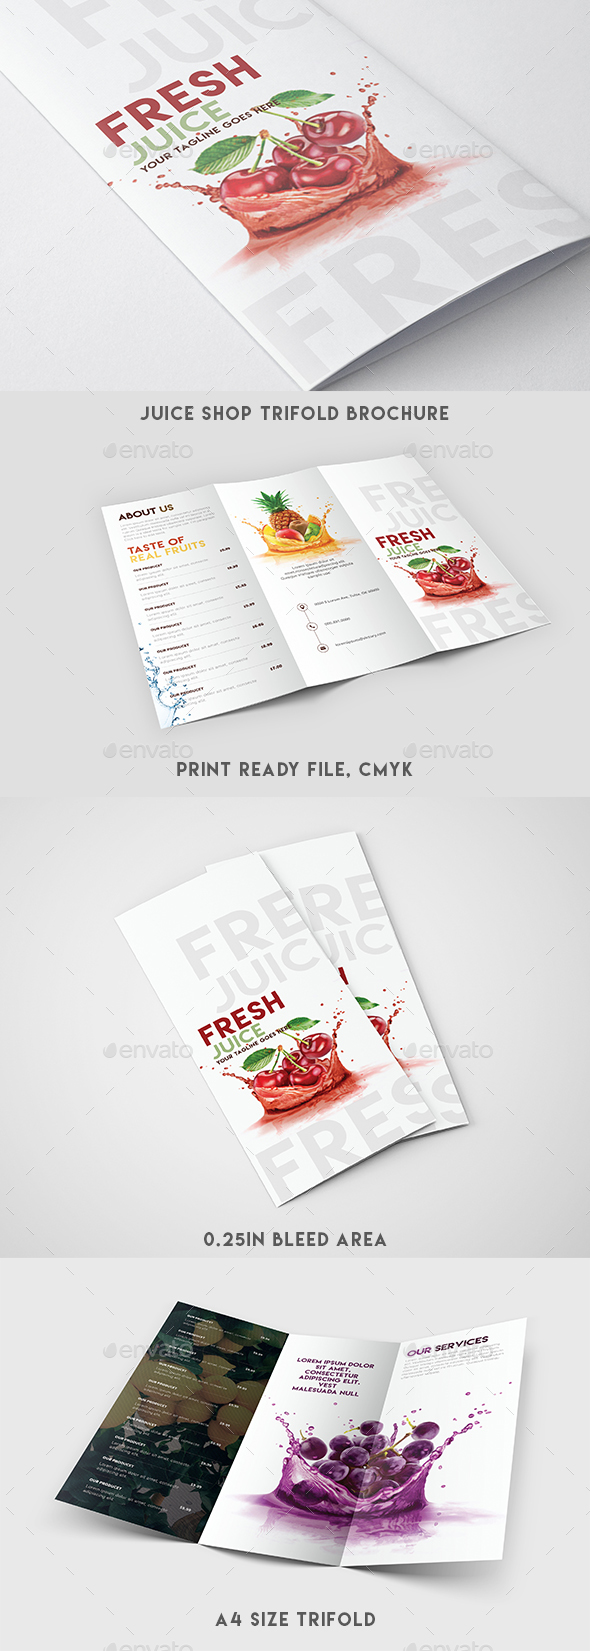 Trifold Brochure - Juice Shop Menu - Brochures Print Templates